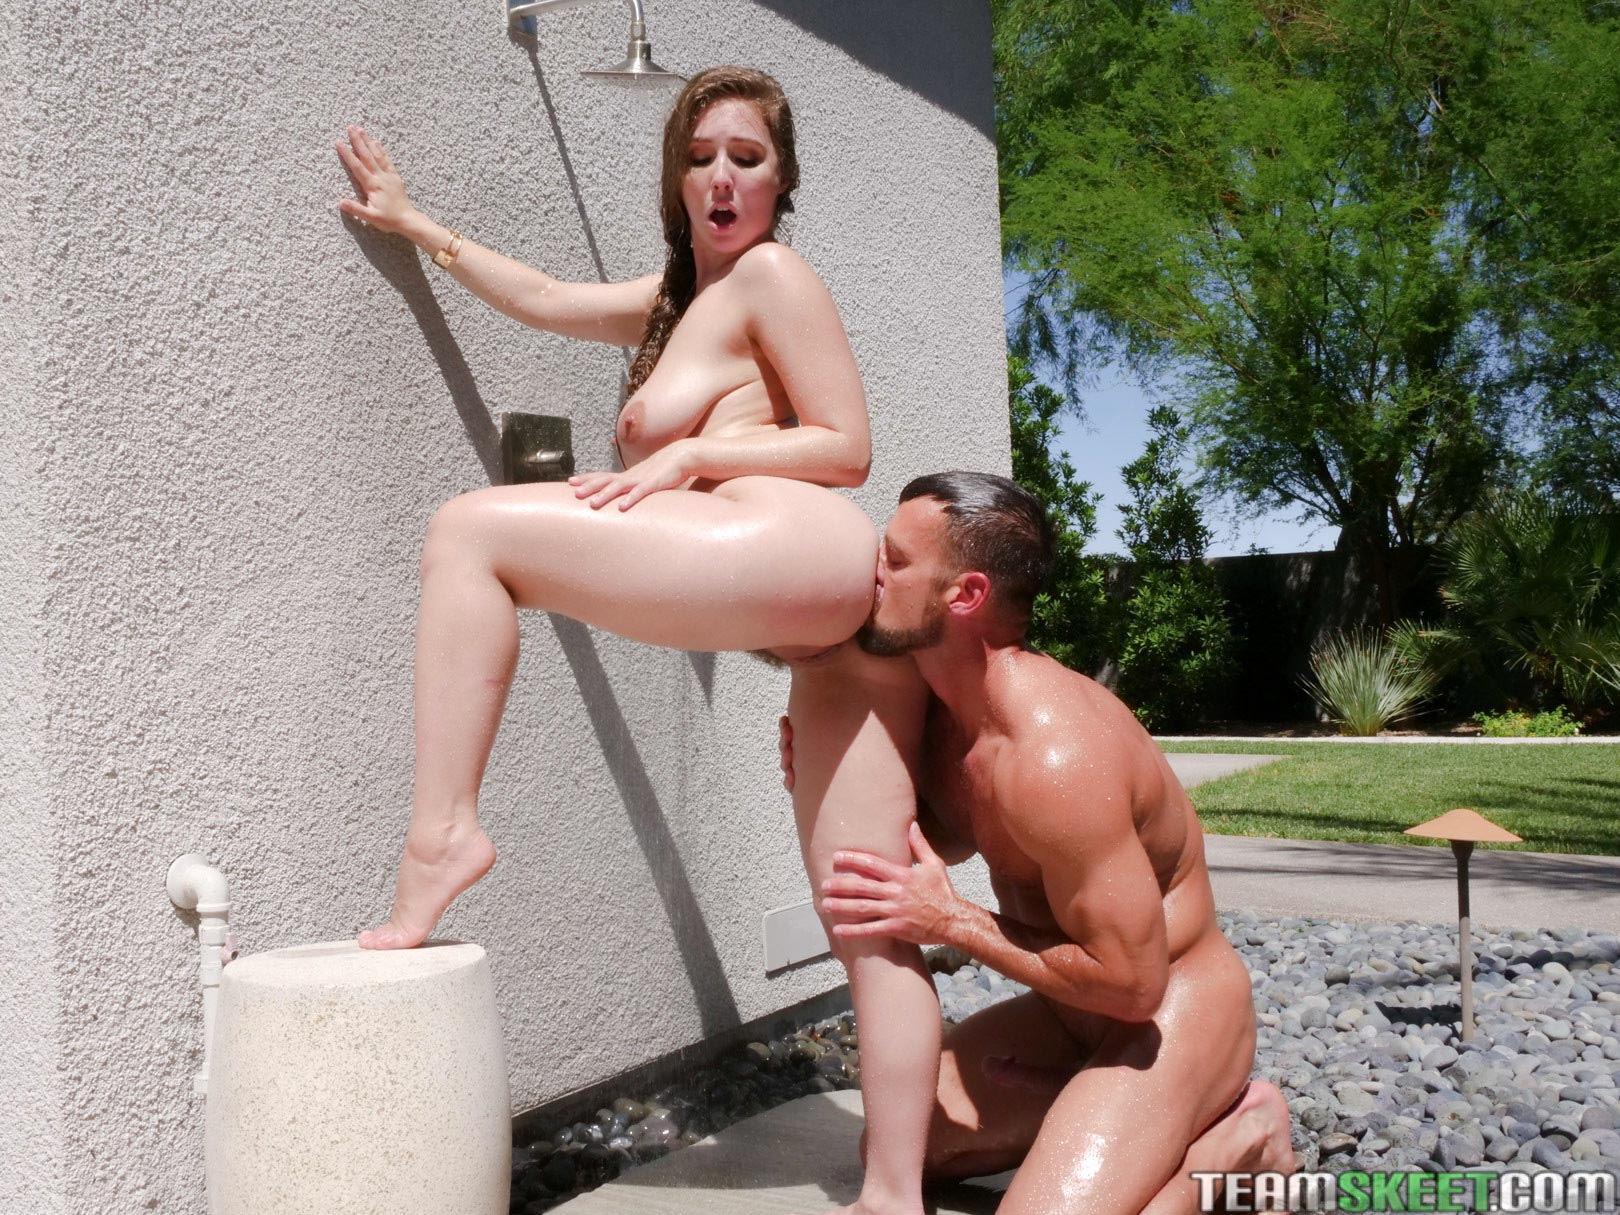 Lena paul fucked by the pool